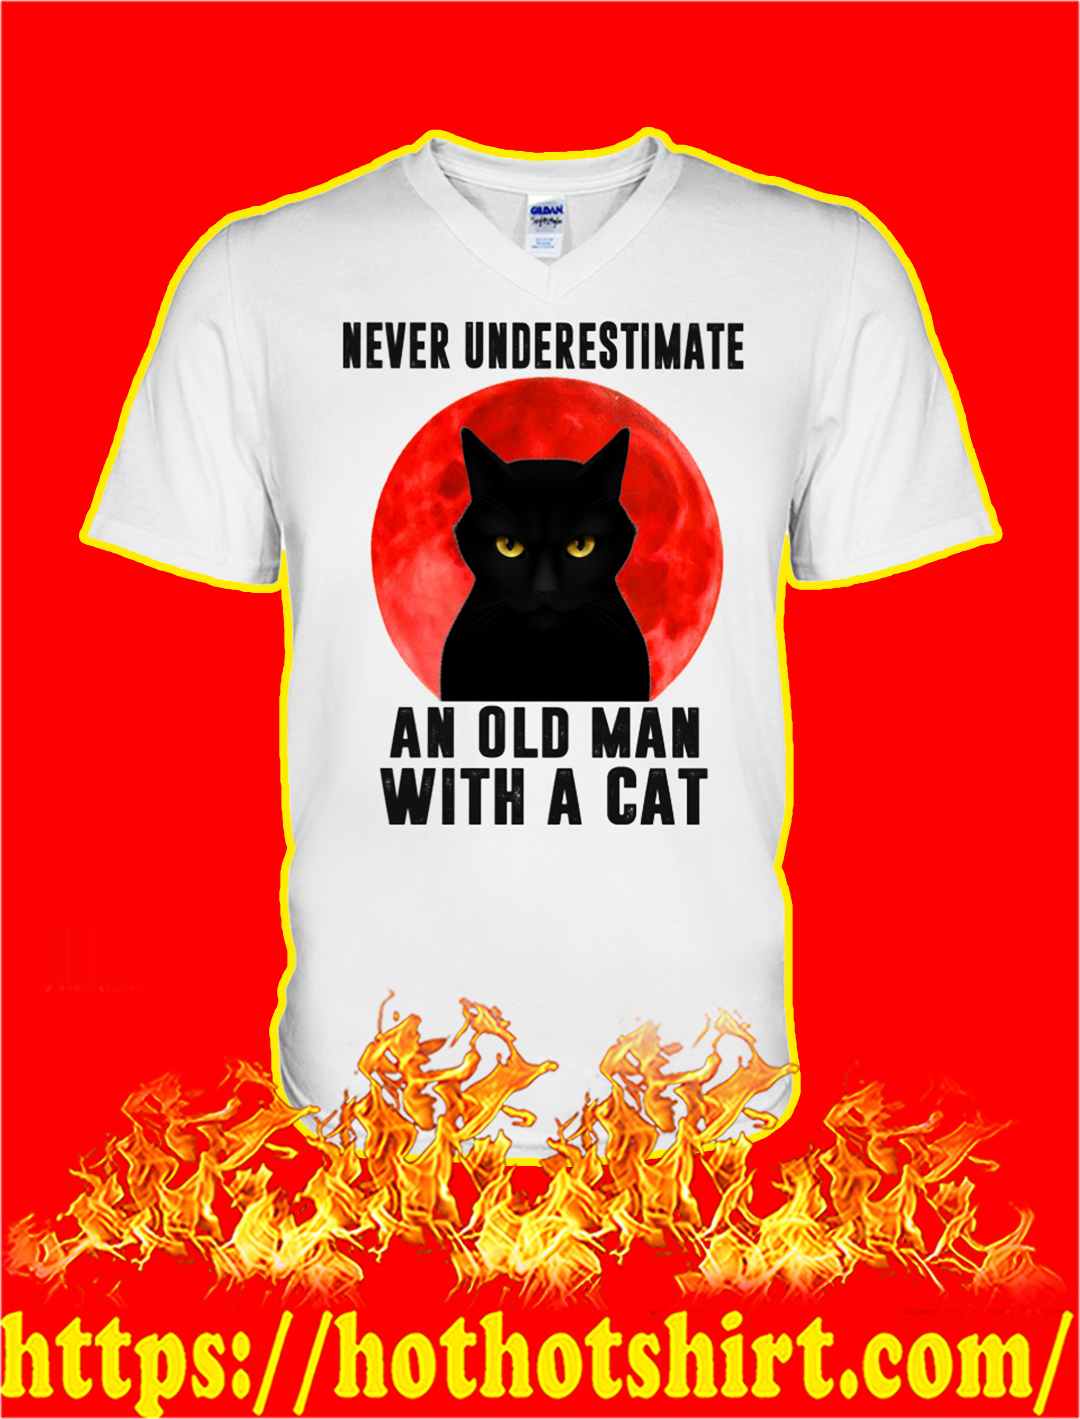 Never underestimate an old man with a cat v-neck